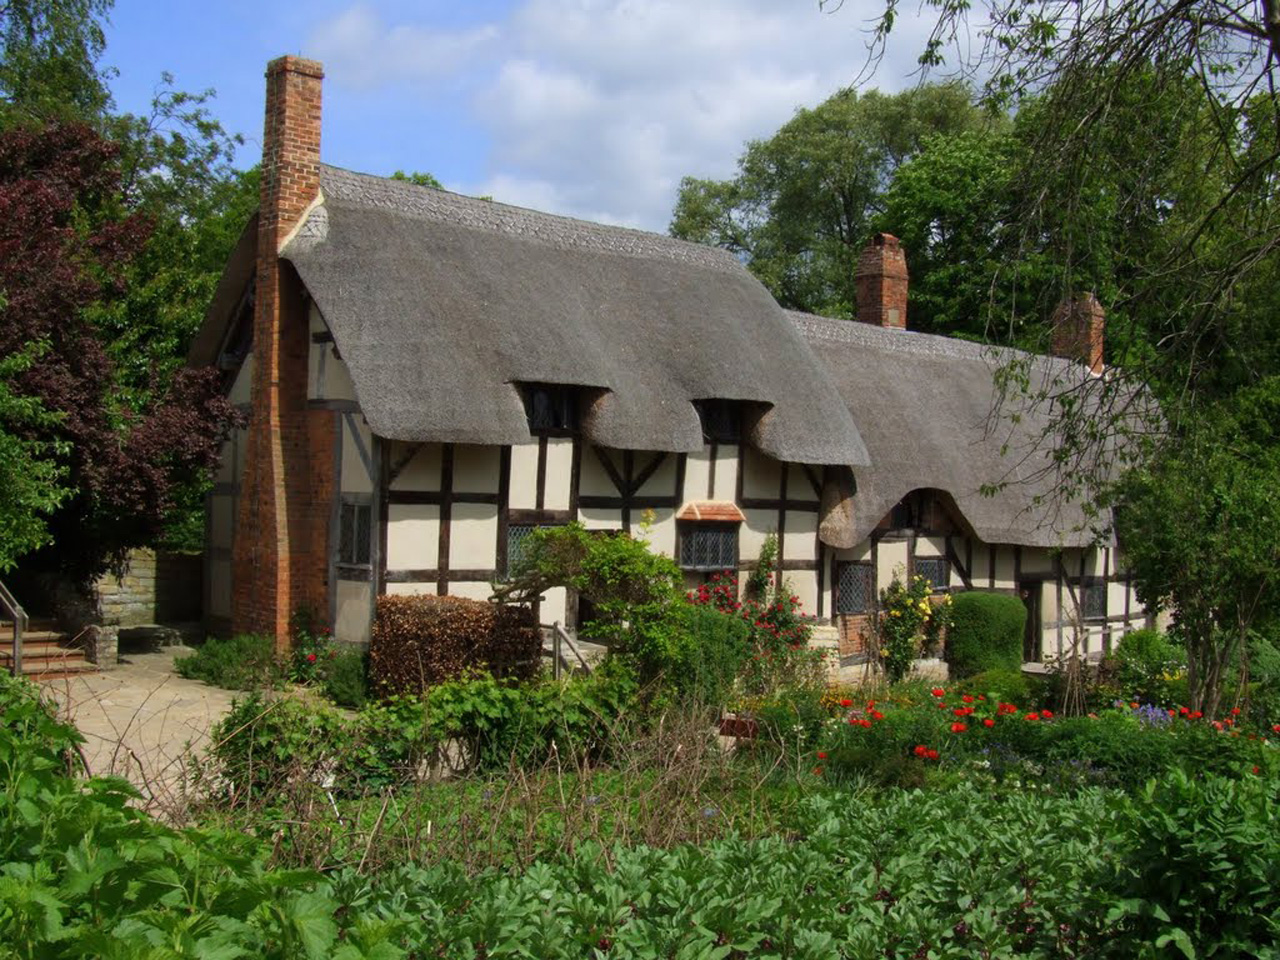 stratford upon avon anne hathaway's cottage